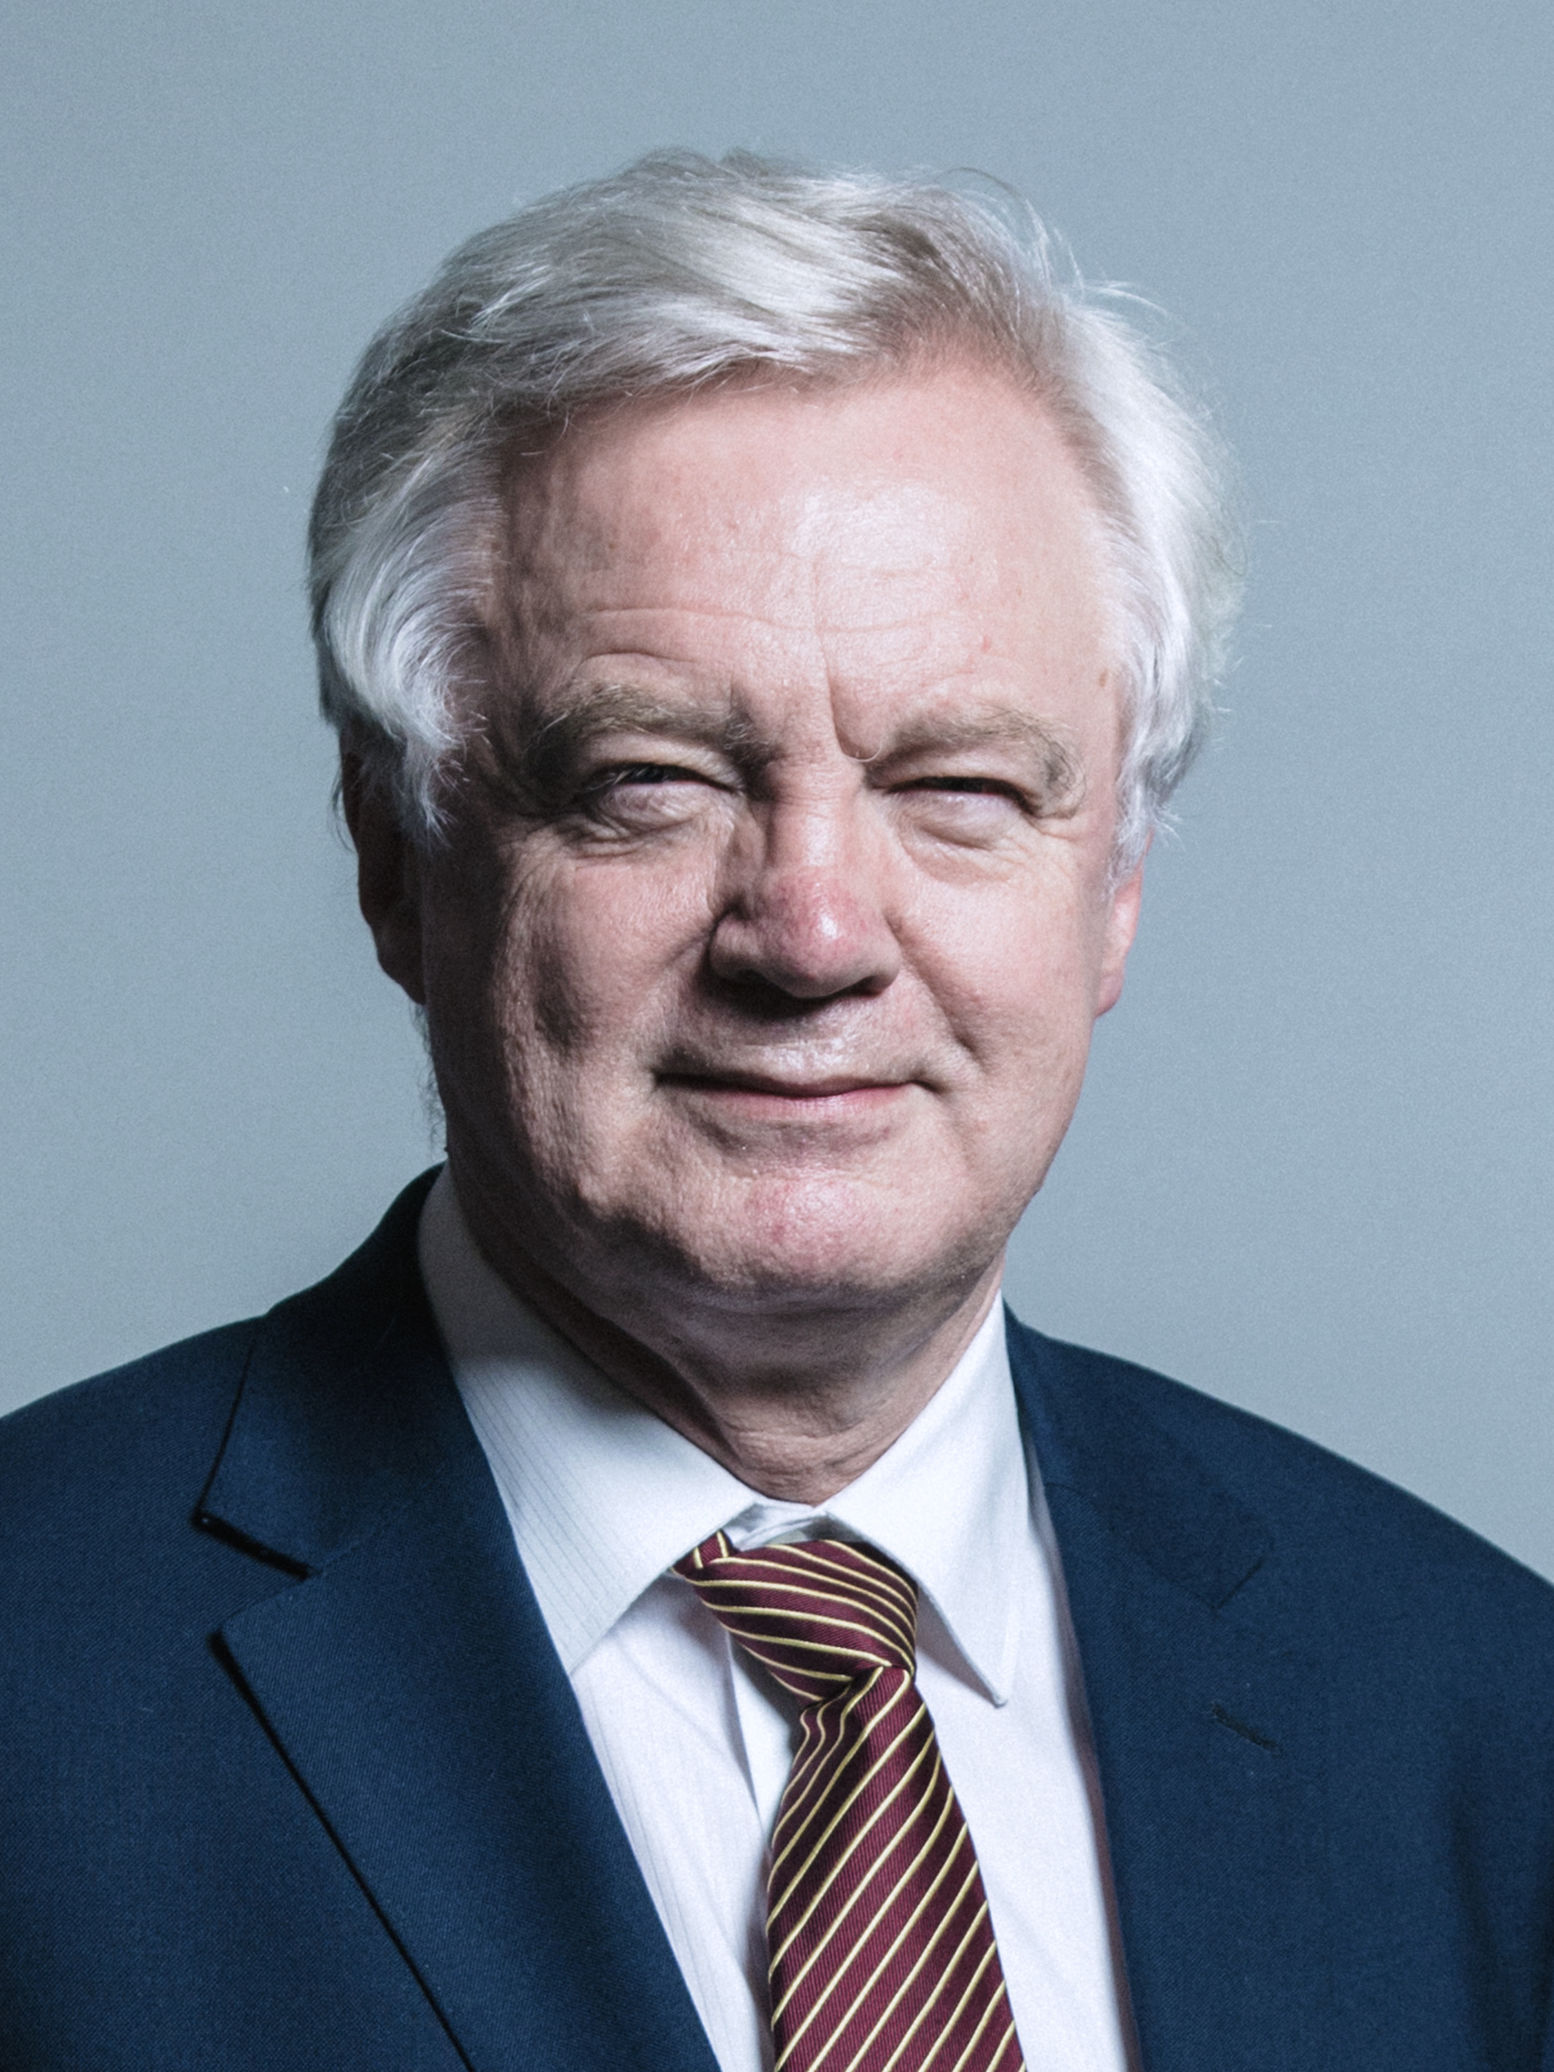 David Davis – 2020 Speech on Finance